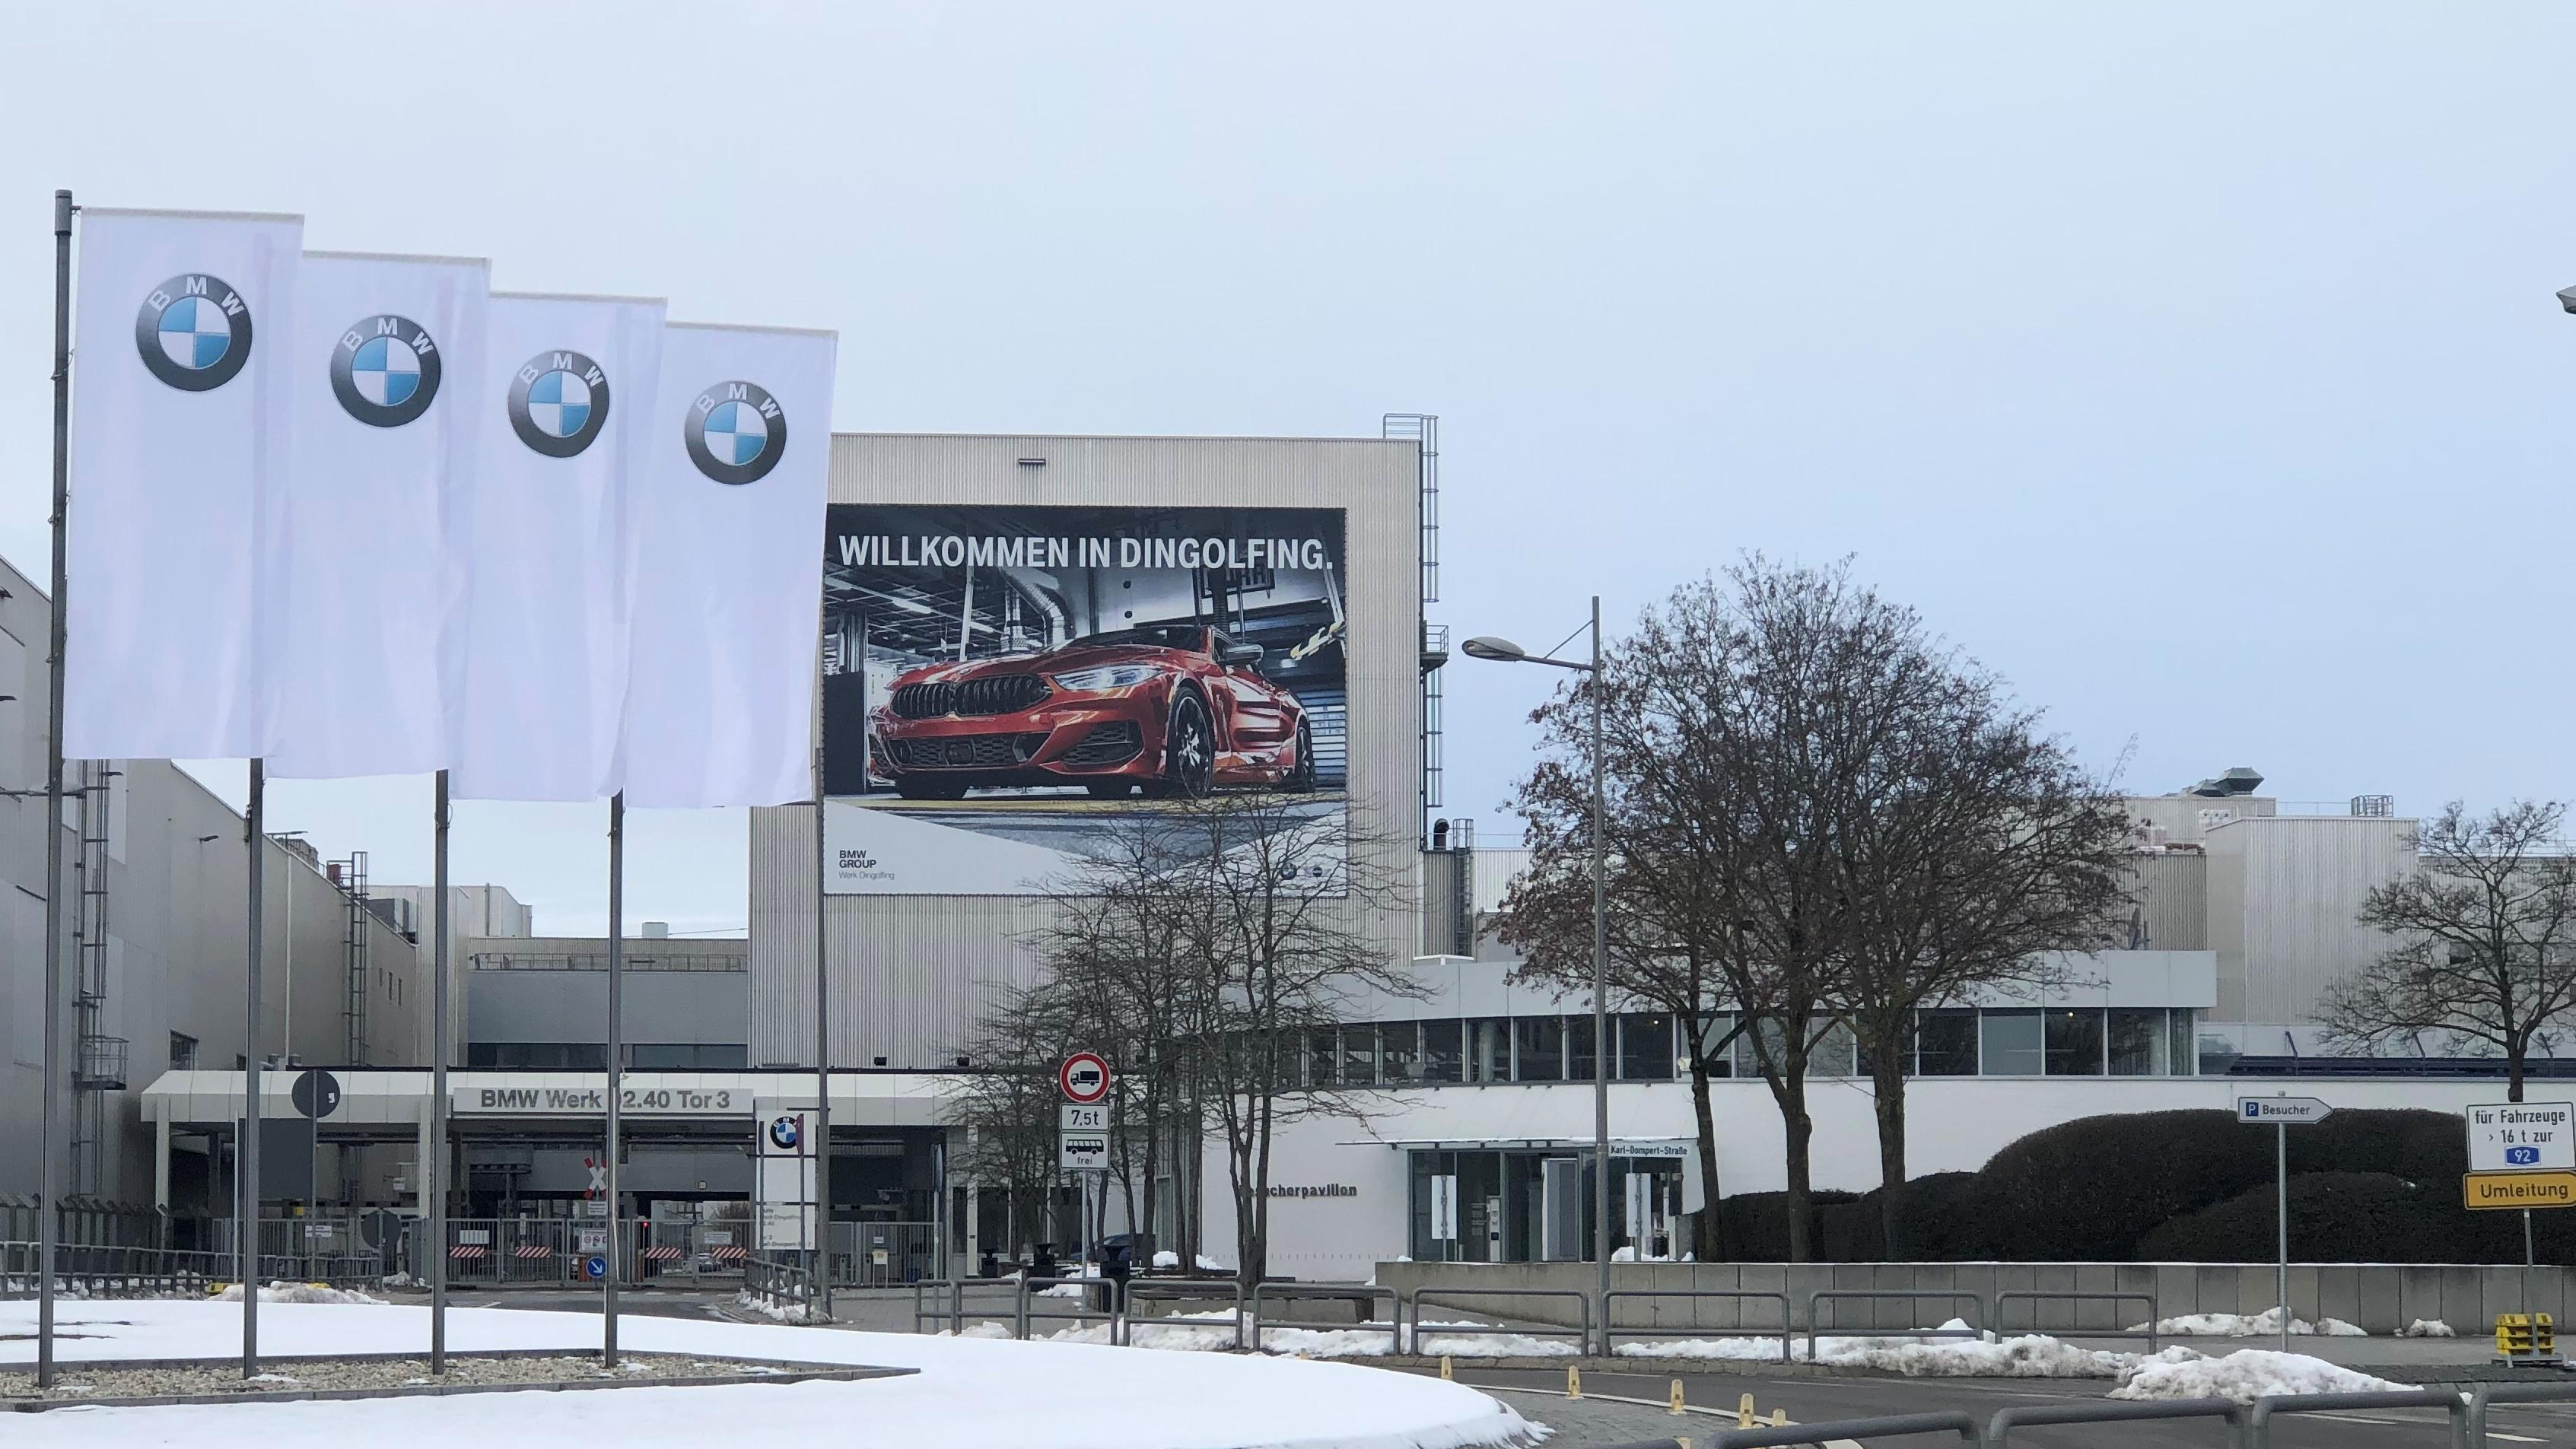 Das BMW-Werk in Dingolfing